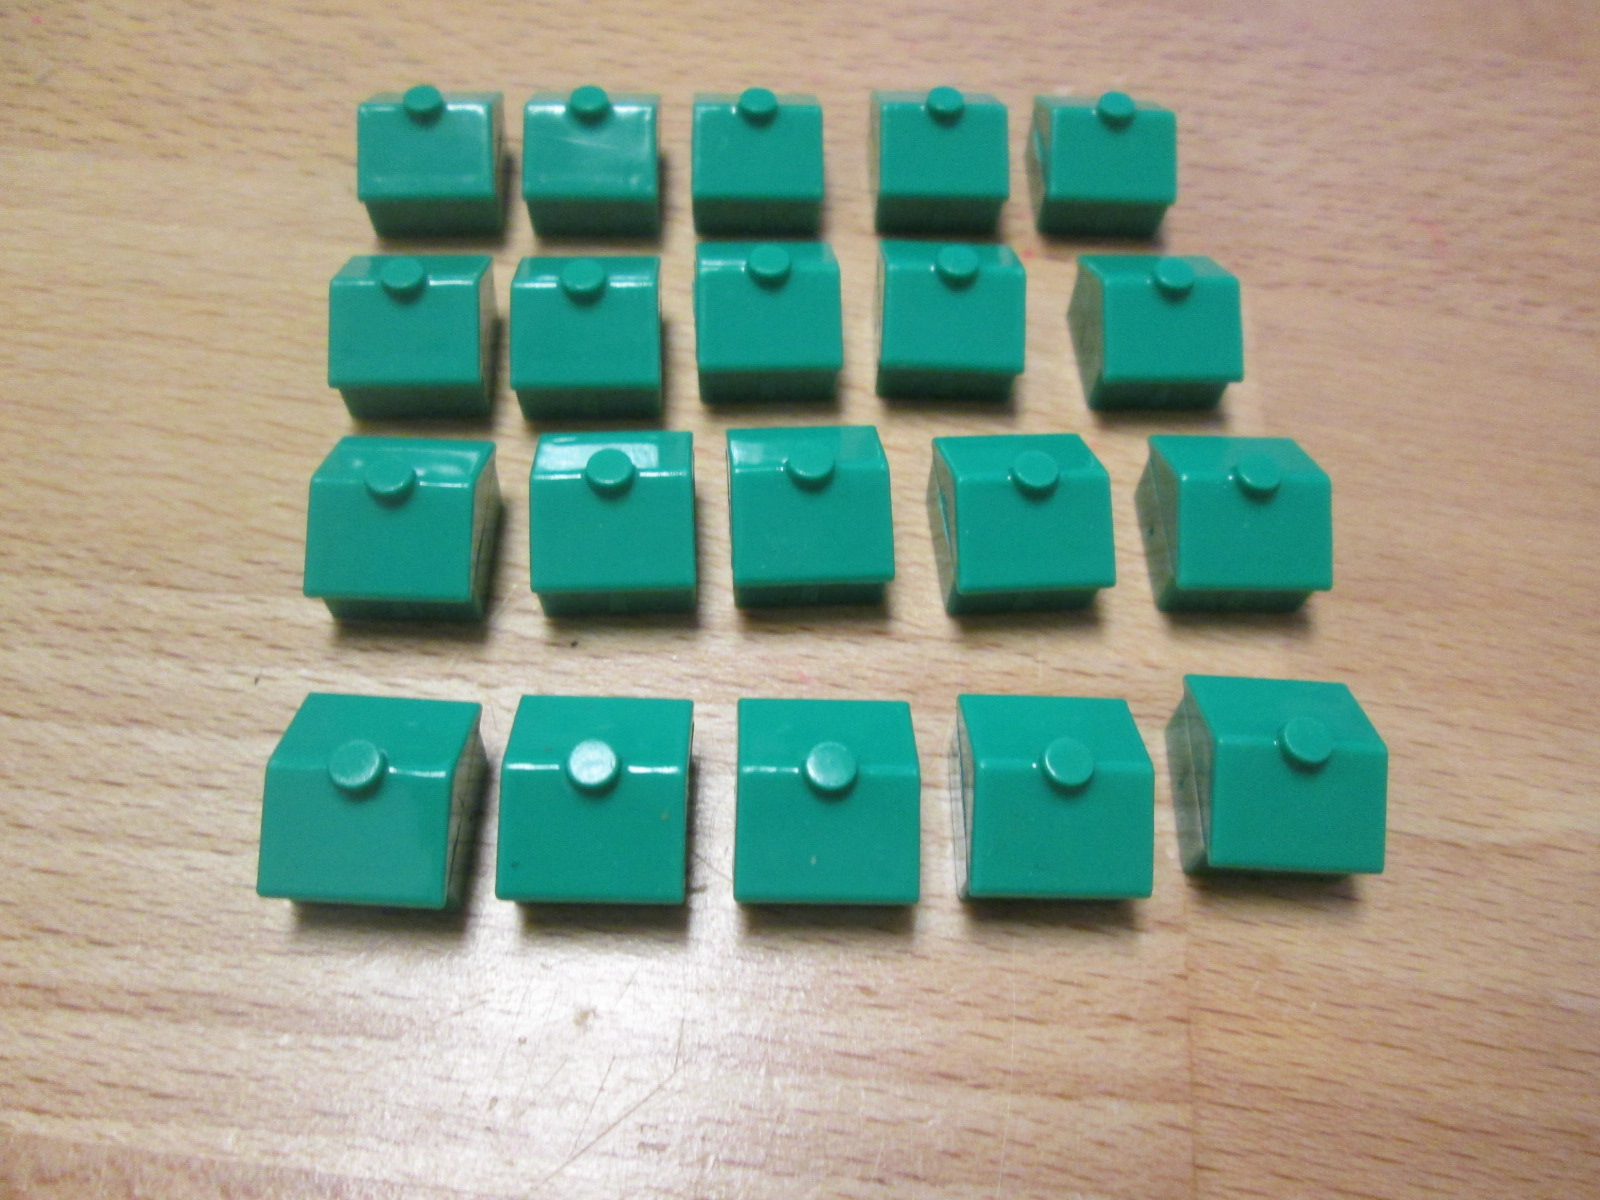 Replacement Lot Of 20 House Pieces For Monopoly Classic Game Toy